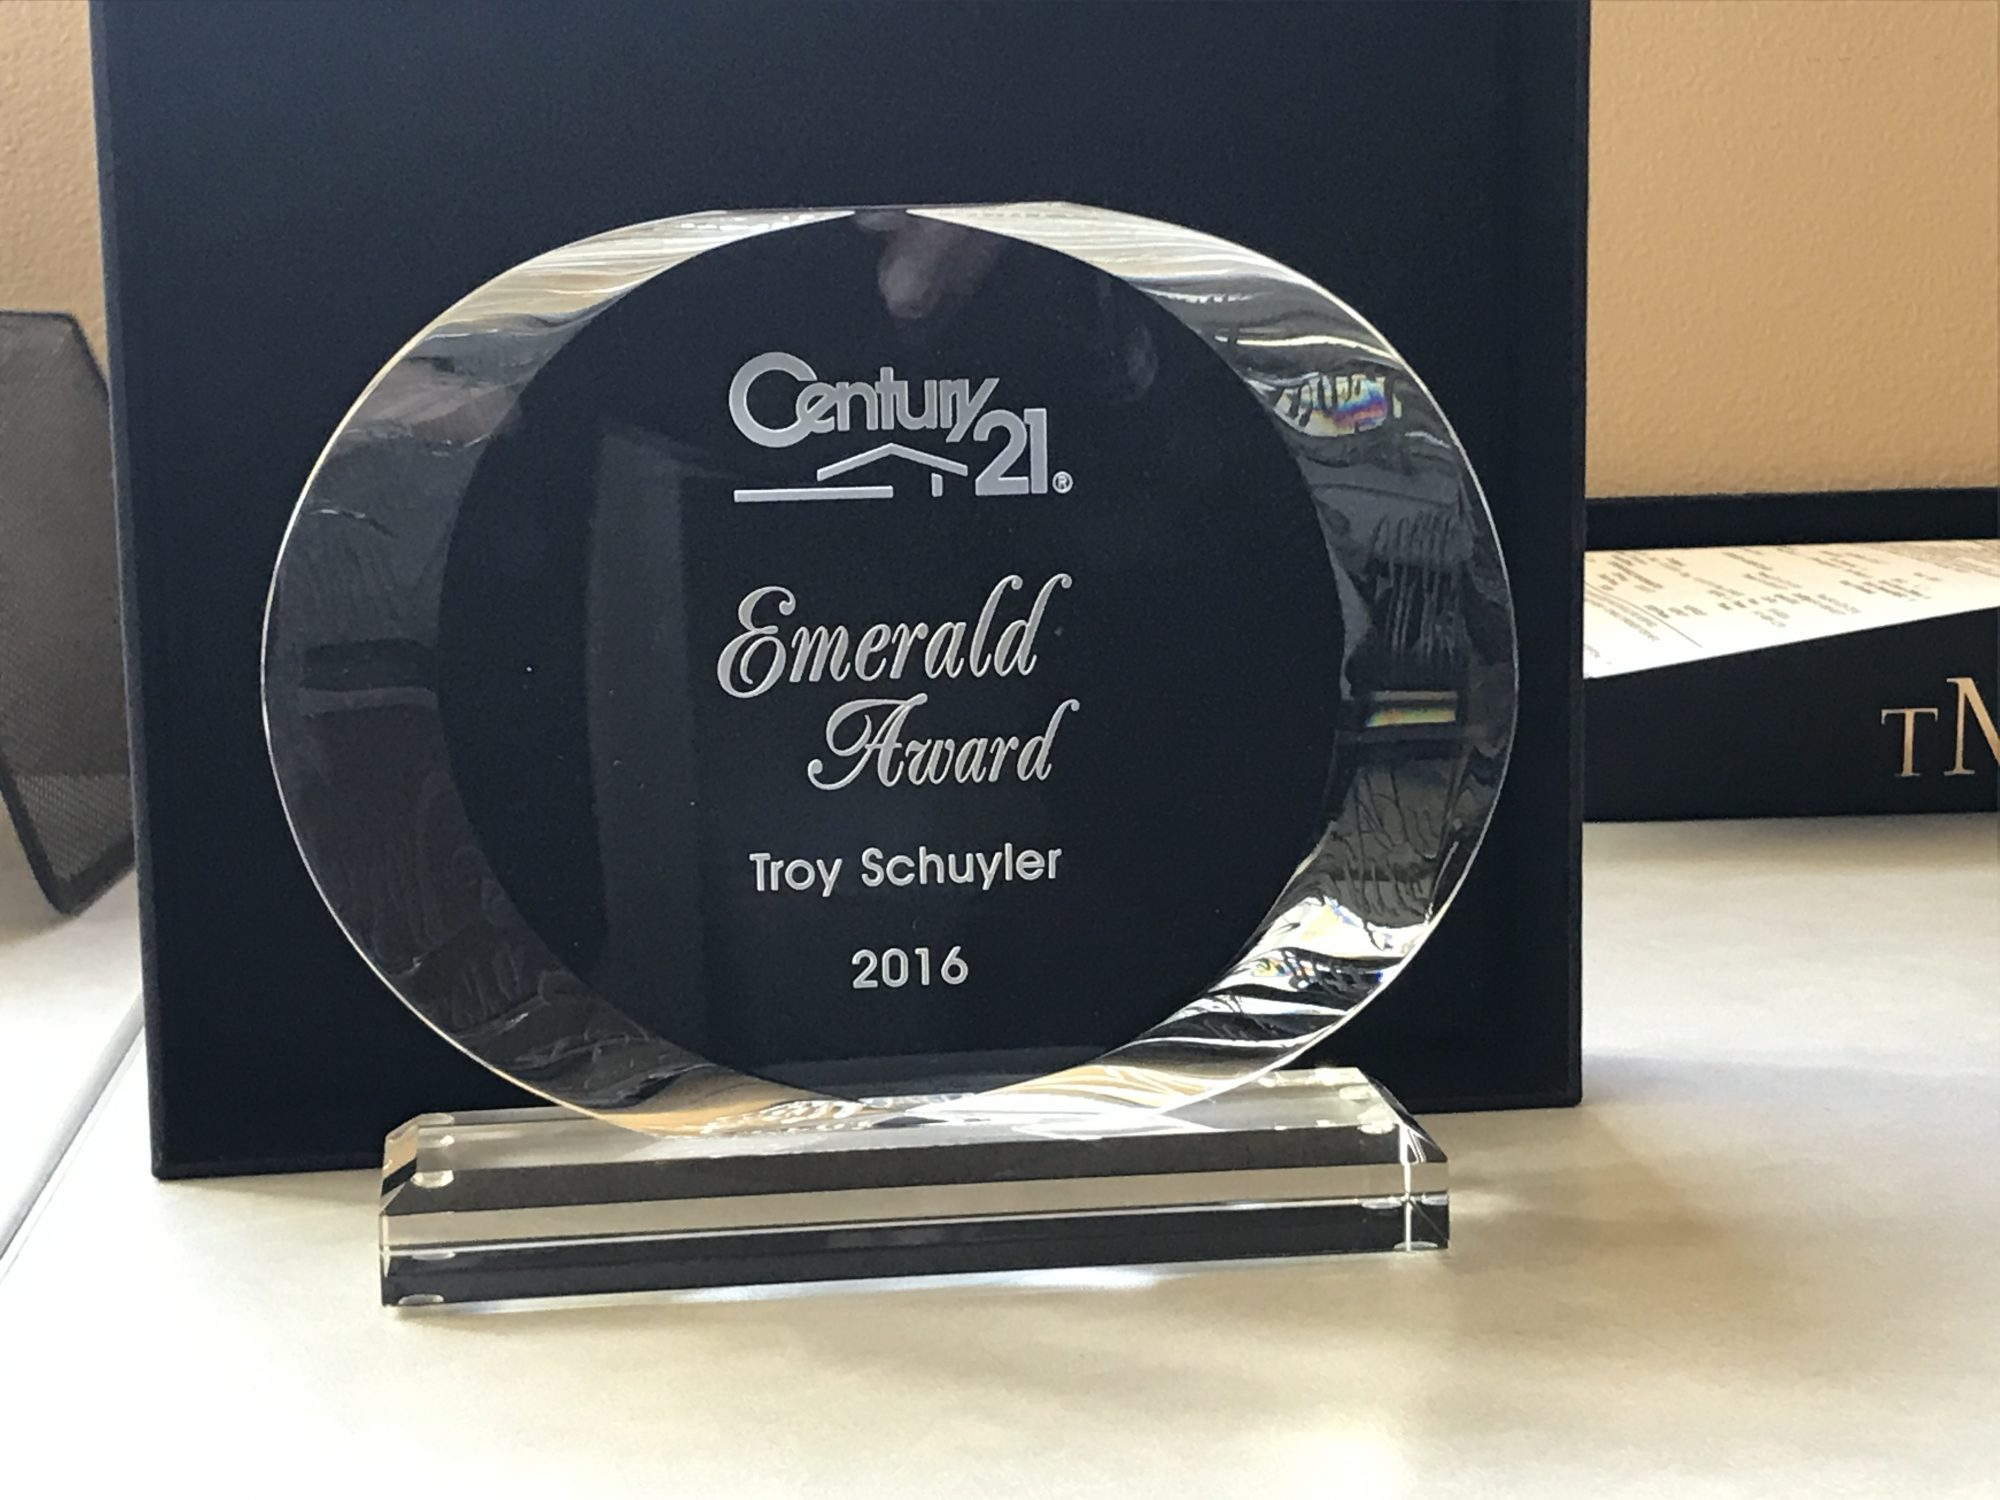 Troy Schuyler Achieves Century 21 Masters Emerald Award 2016